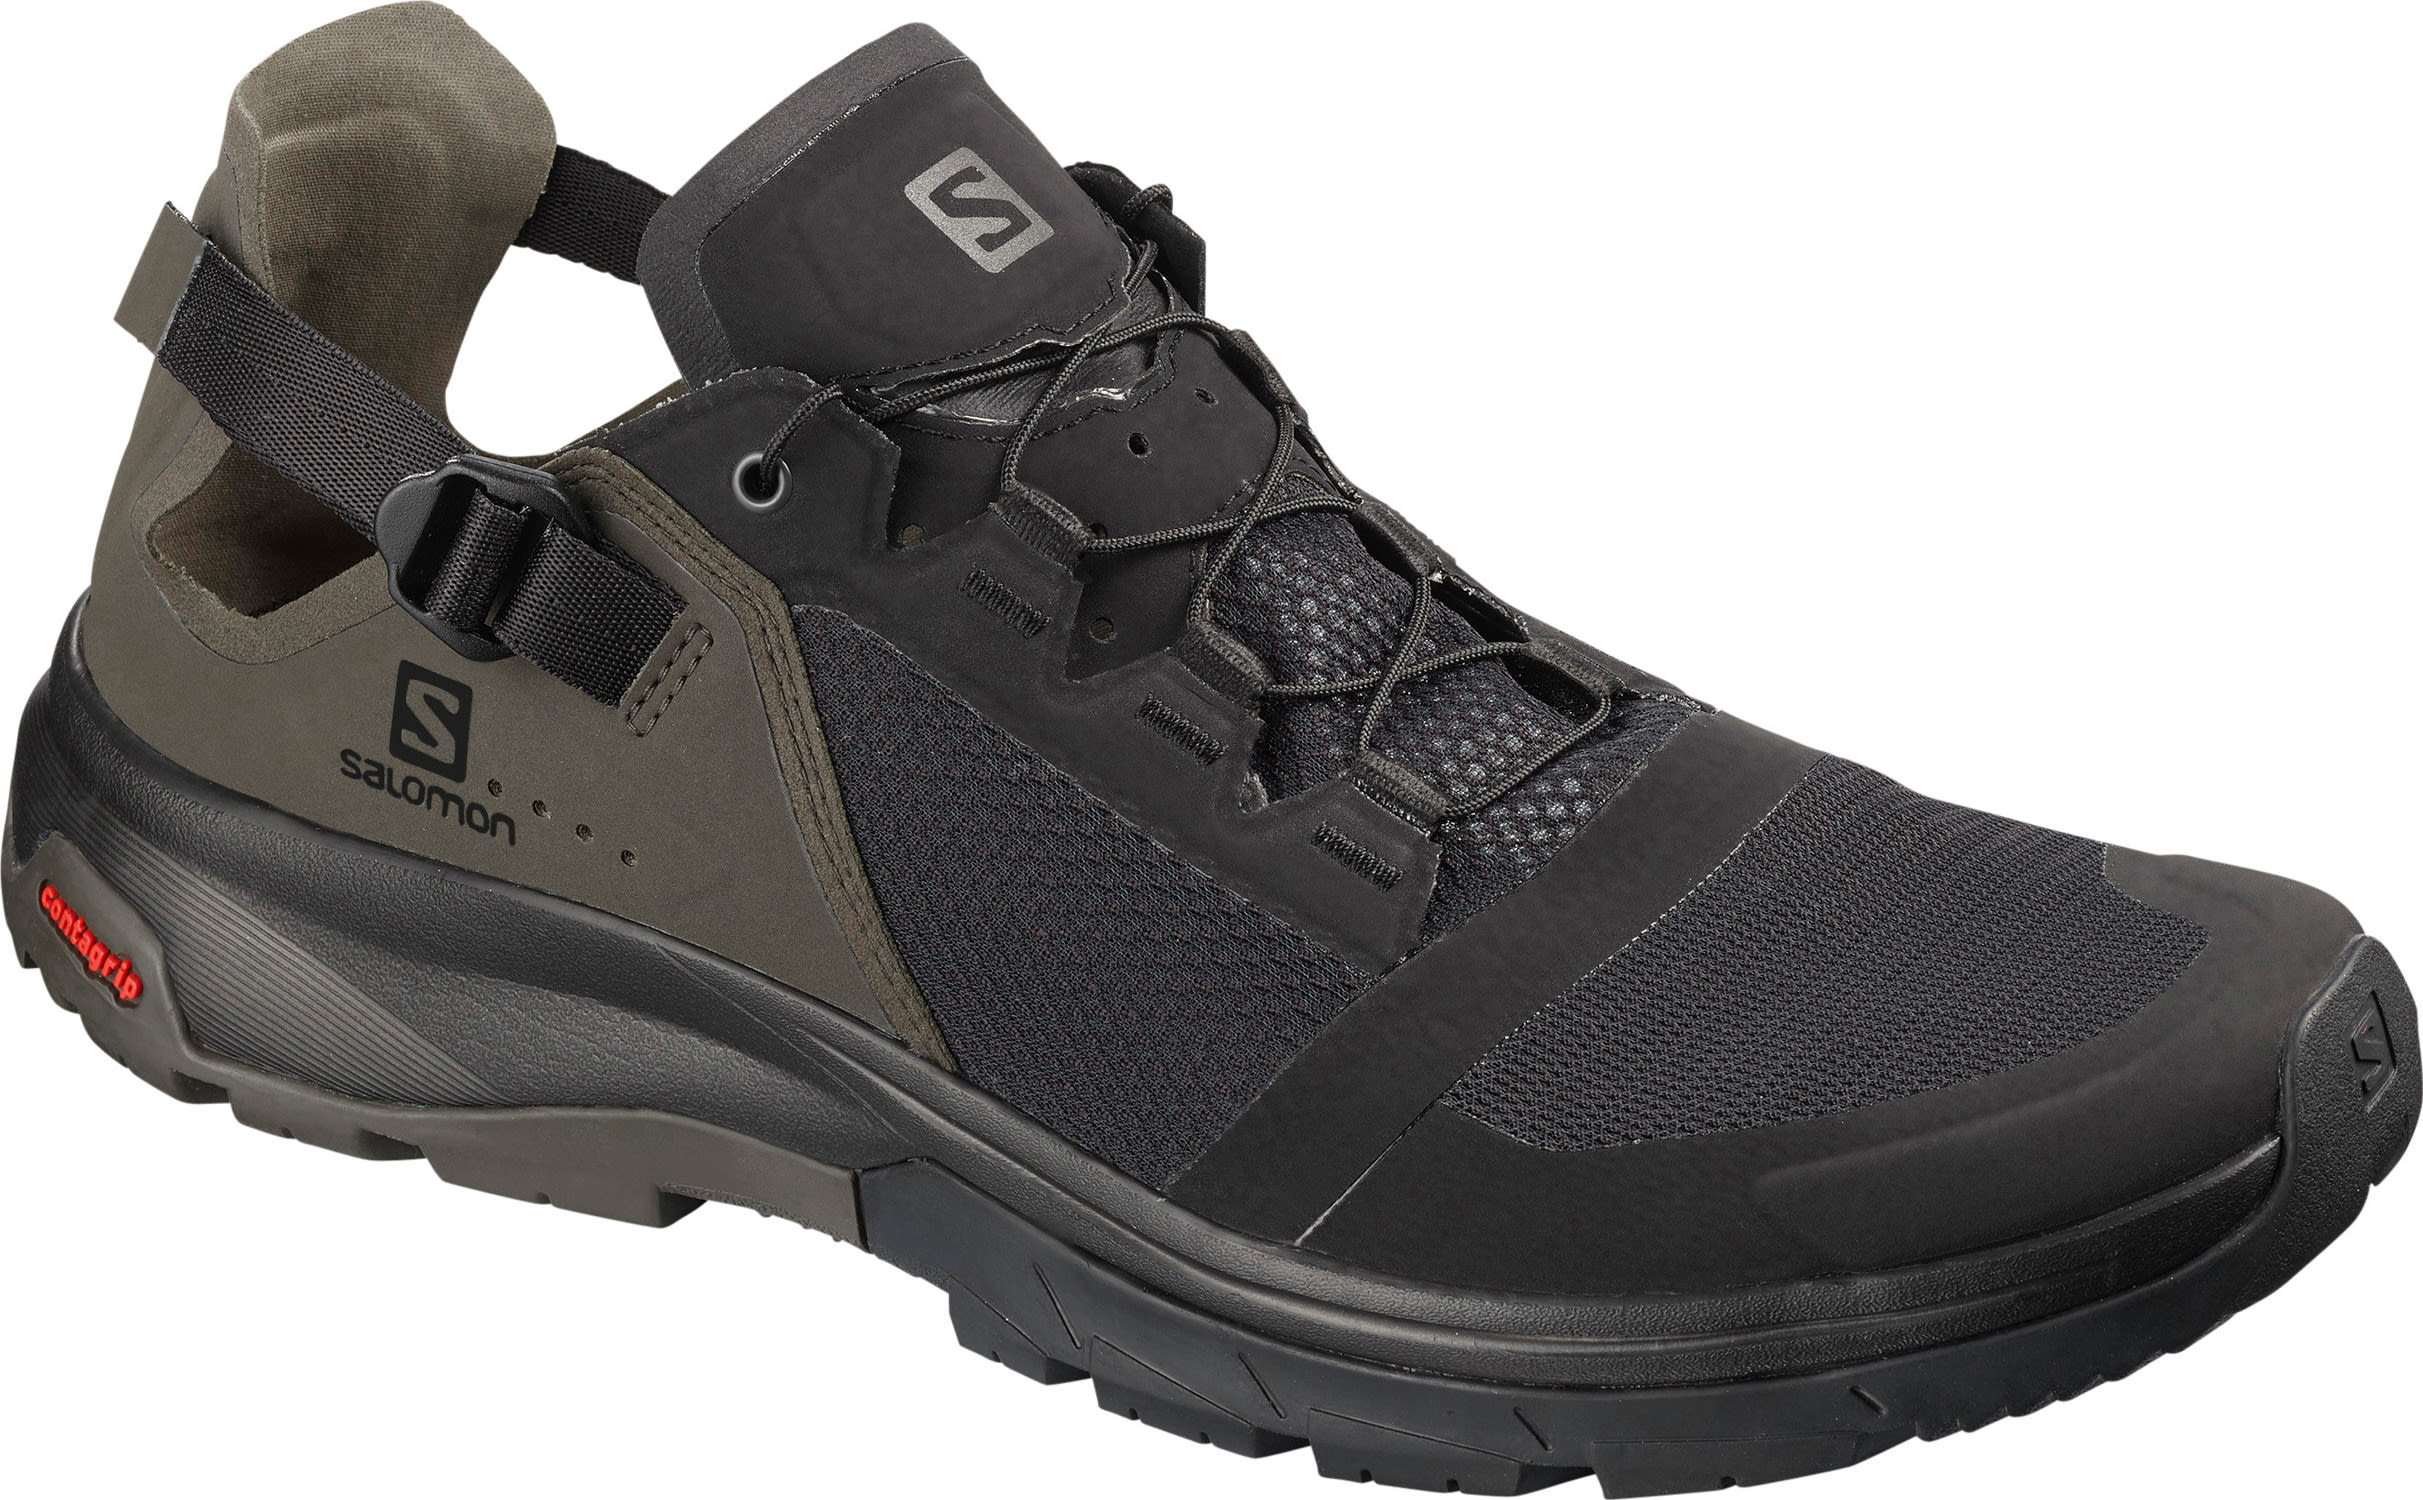 Salomon Techamphibian 4 Water Shoes 2019